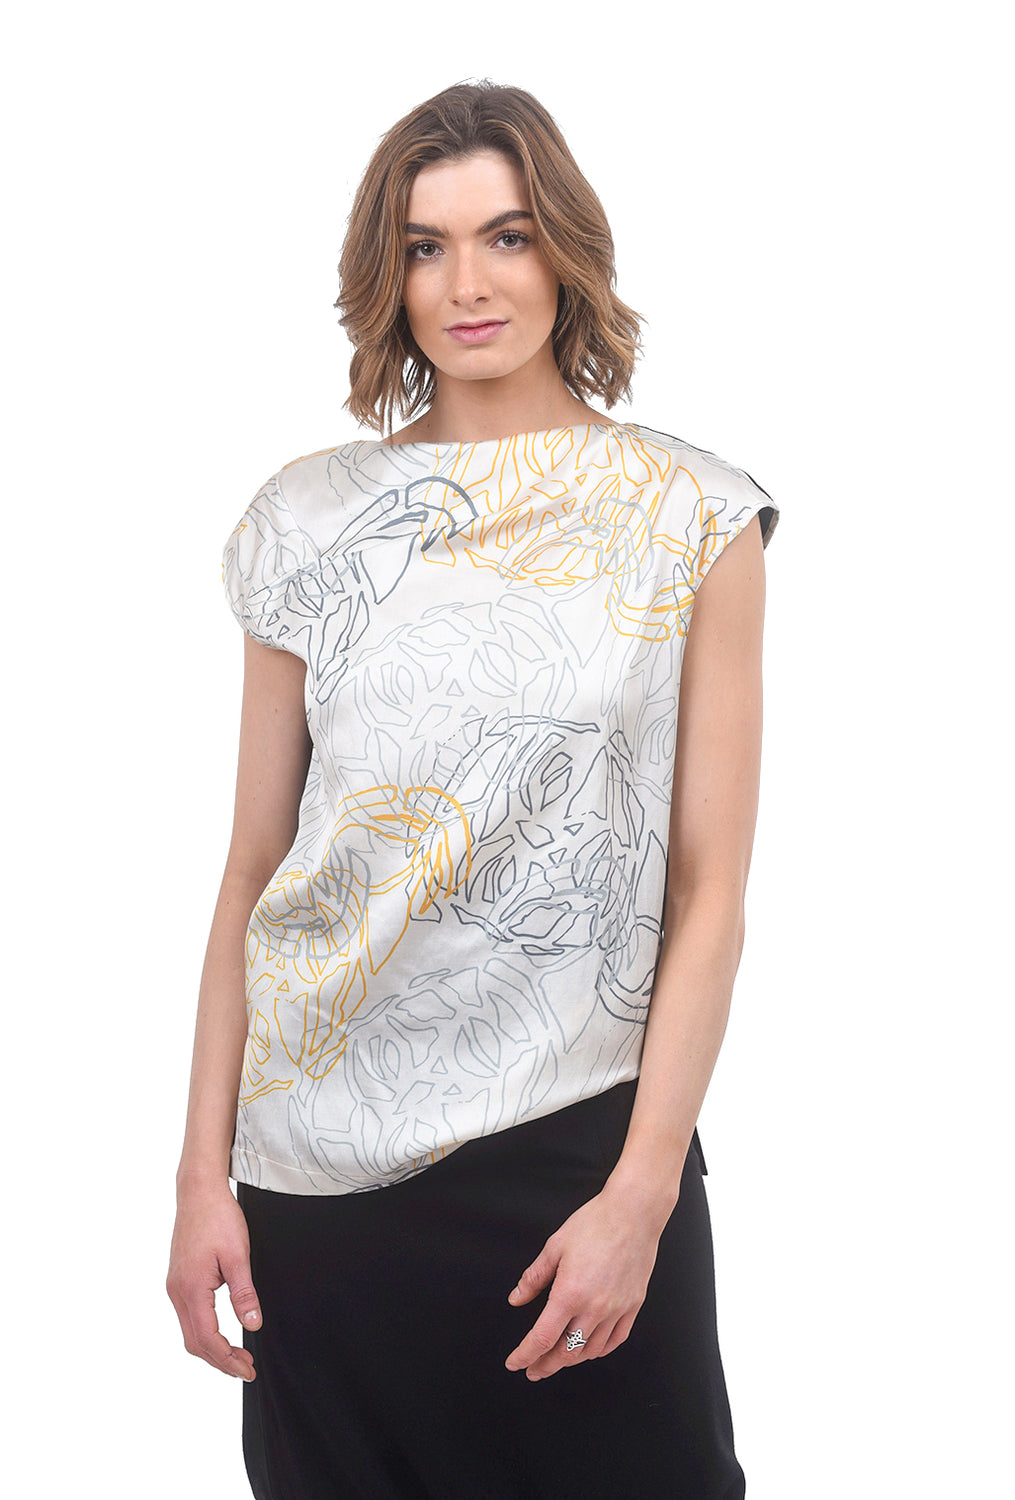 a.oei studio Draped Neck Print Top, Cream/Print